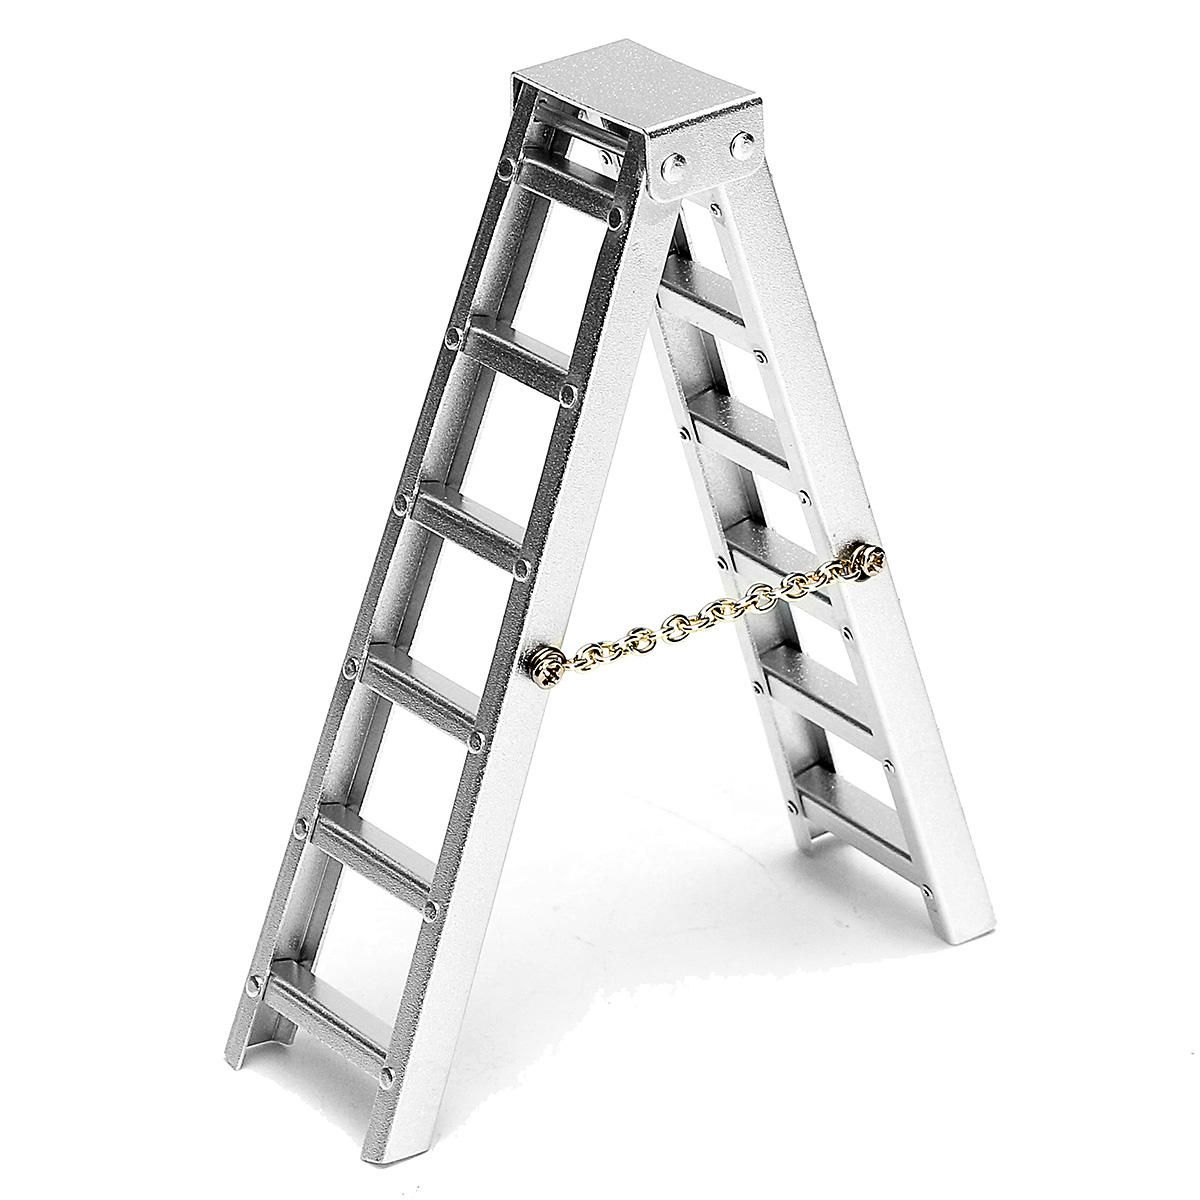 Climb The Ladder Addition 1 10 Dice Game Dice Games Math Games Games